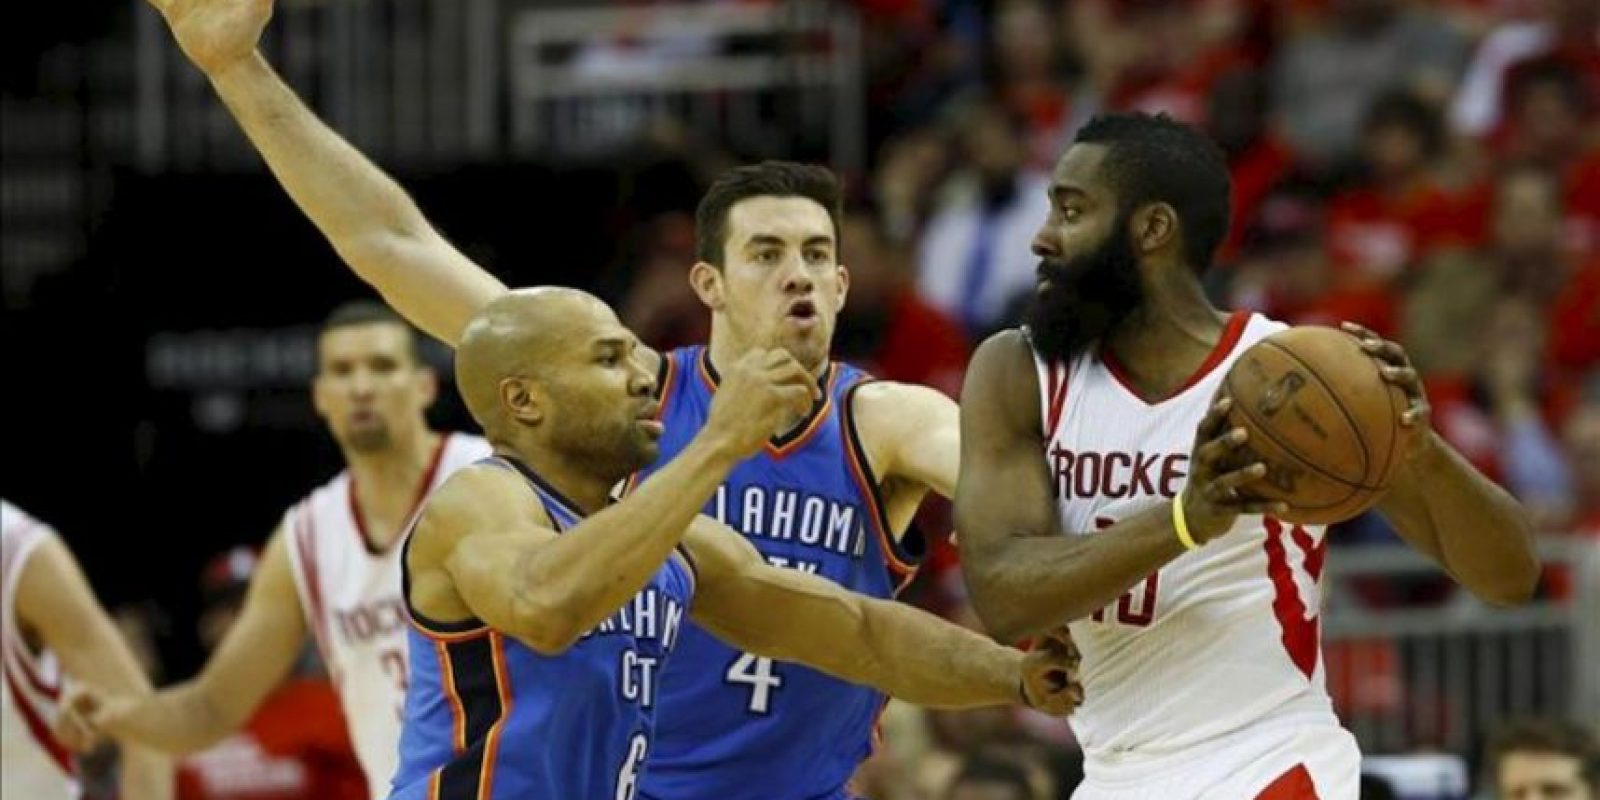 Derek Fisher (i) y Nick Collison (c) de los Thunder de Oklahoma City en acción ante James Harden (d) de los Rockets de Houston, en su juego clasificatorio de la NBA en el Toyota Center en Houston, Texas (EEUU). EFE